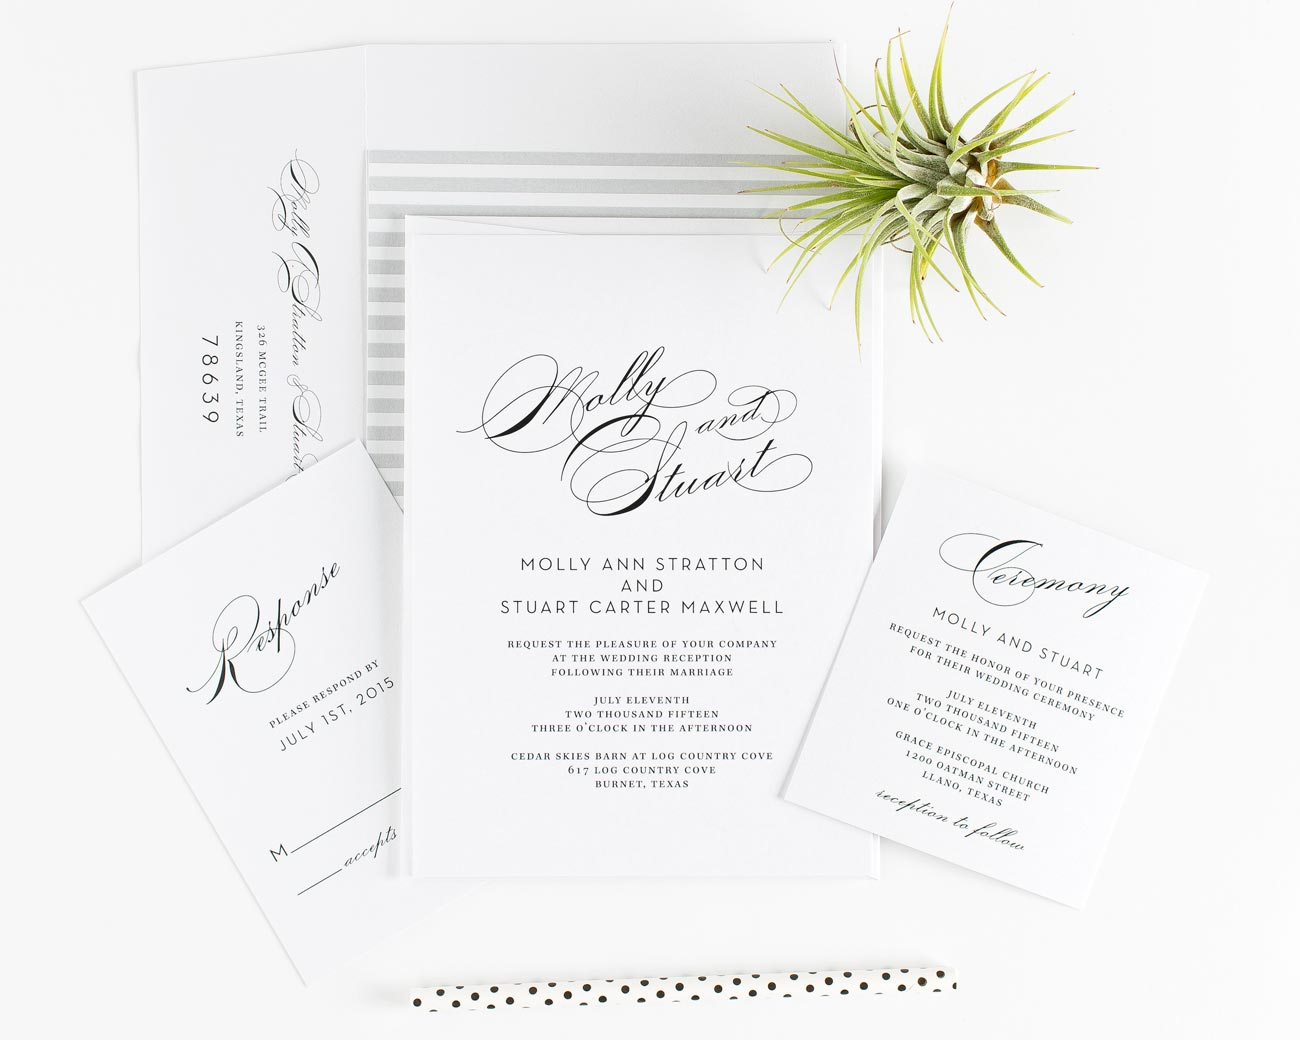 Gray Glam wedding invitations